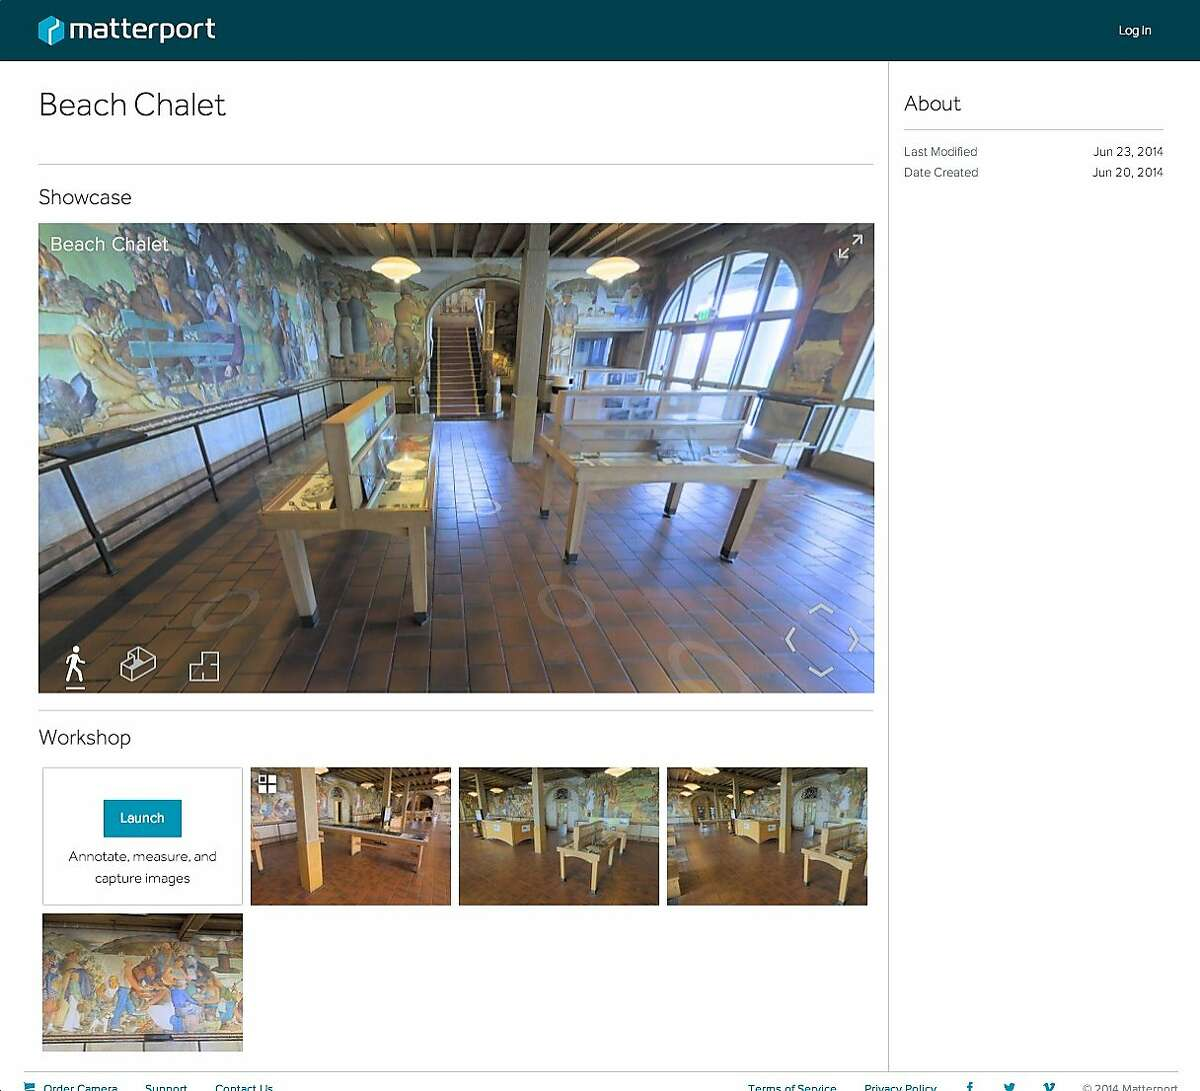 Matterport creates cloud-based 3D models of real-world spaces that can be experienced, changed, and shared online. The Matterport 3D System uses a patented camera, controlled through the user's Apple iPad, to capture 3D and 2D images of an interior space. The camera rotates on a tripod that the user places around a room to capture every aspect of the space.